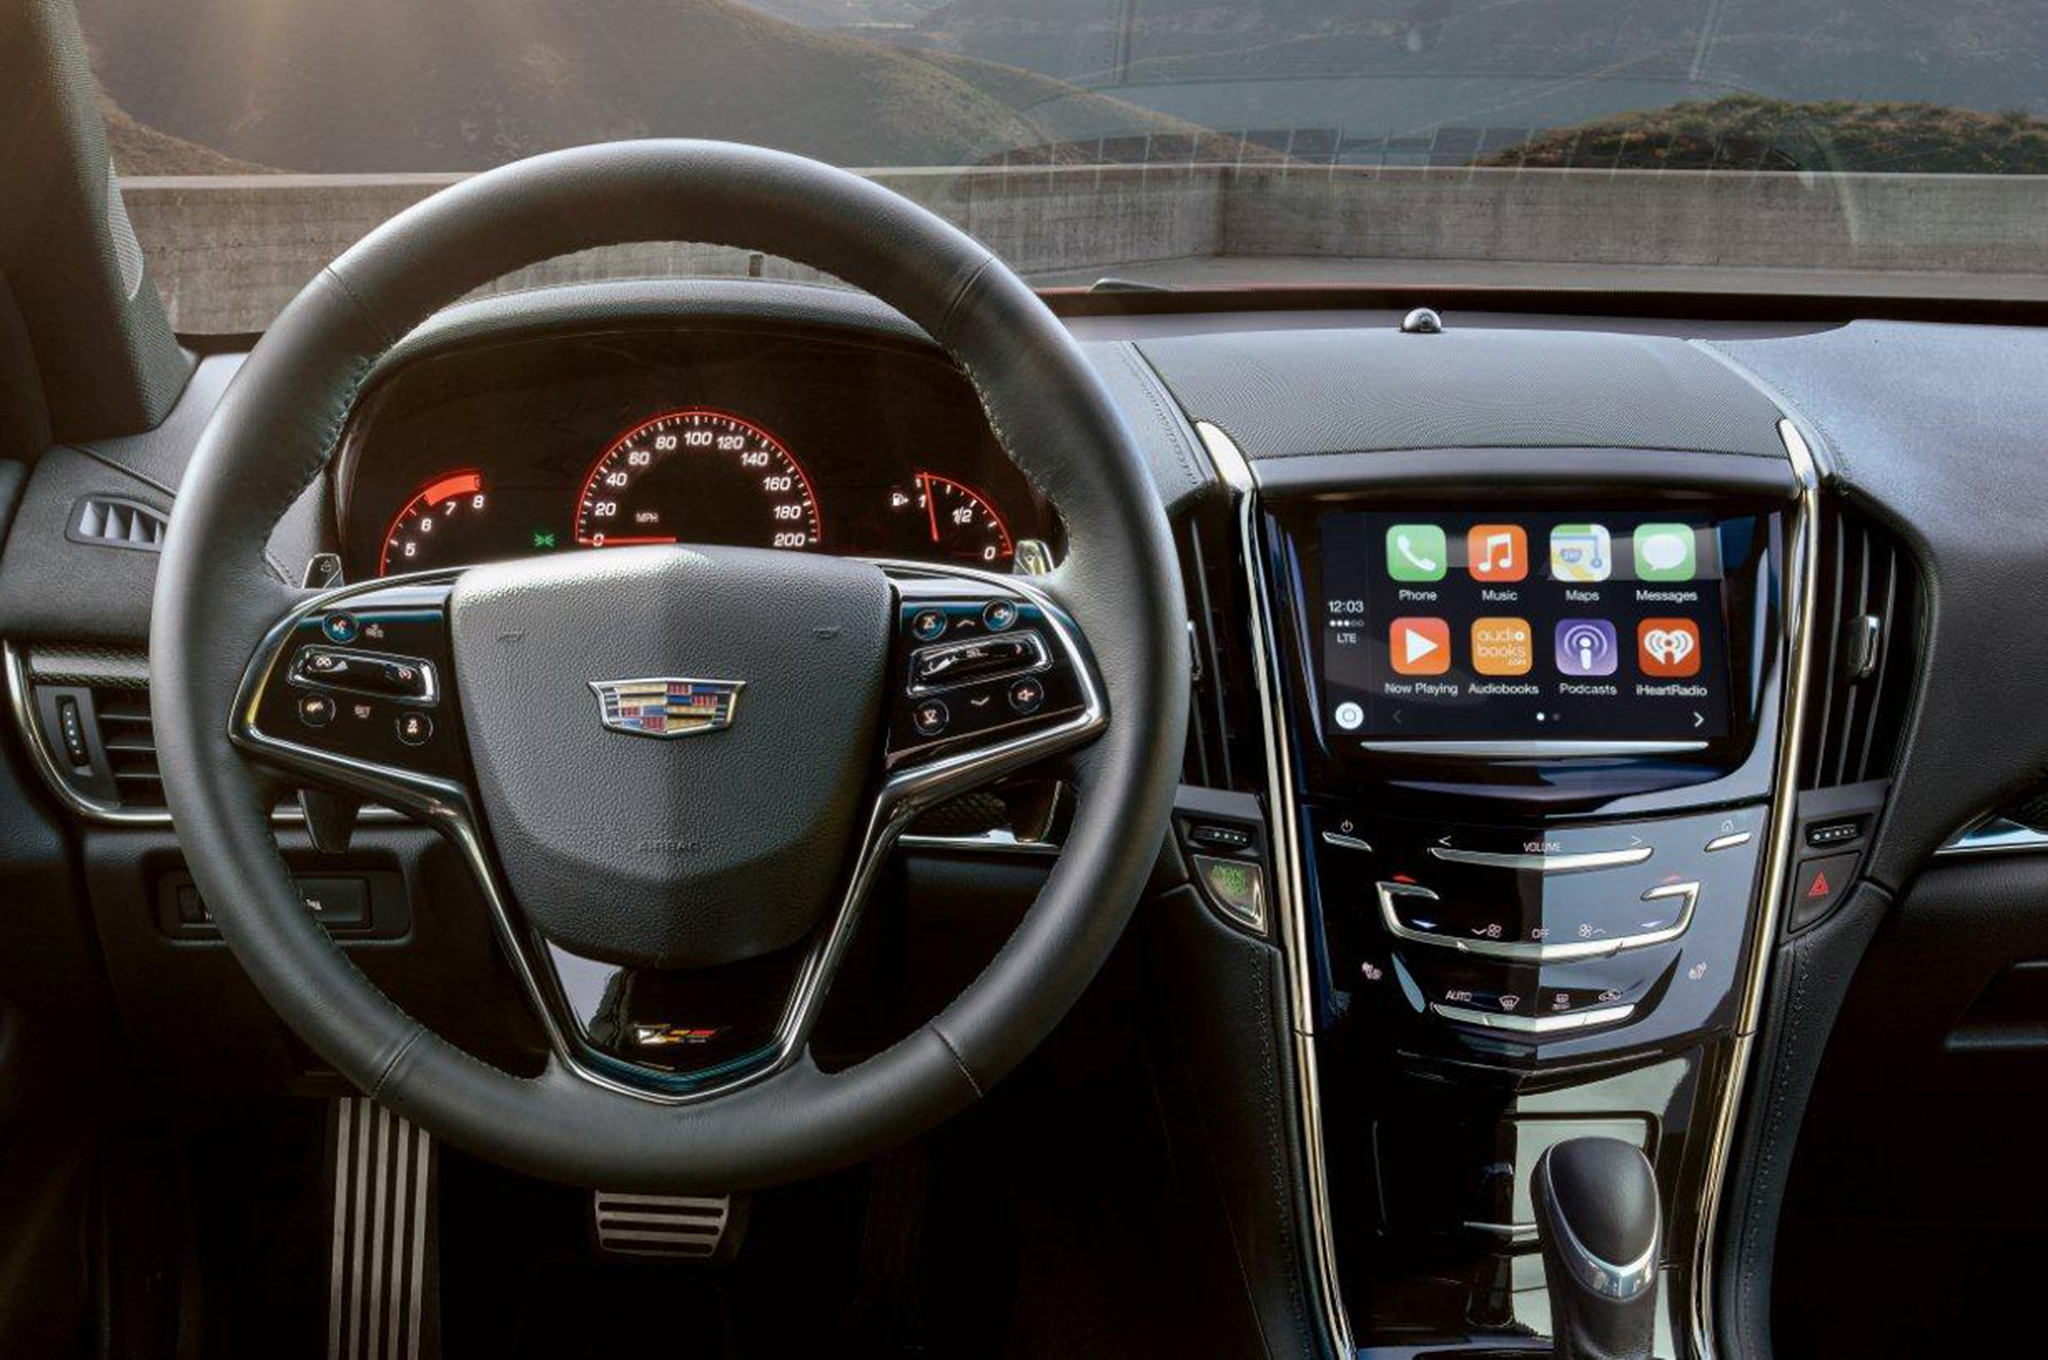 2016 Cadillac Models Get Updated CUE, Apple CarPlay, Android